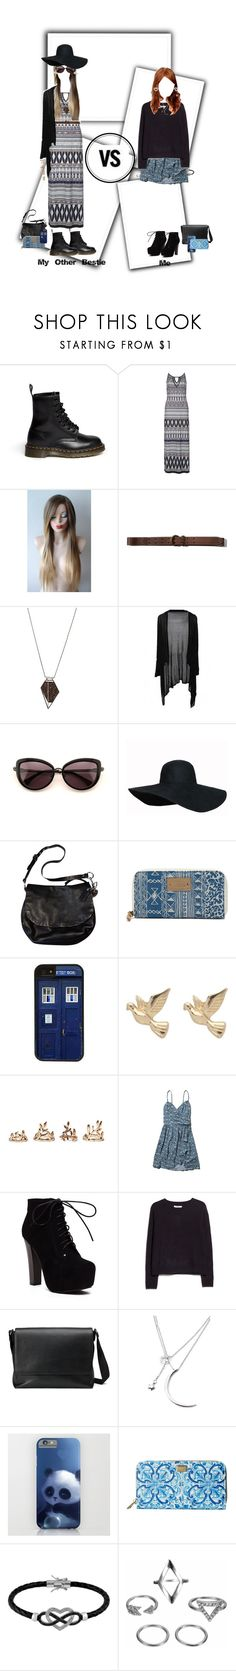 """""""My Best Friend's Style Vs. My Style"""" by elmoknowswhereyoulive ❤ liked on Polyvore featuring Dr. Martens, Billie & Blossom, Abercrombie & Fitch, Monique Péan, Wildfox, Coach, Vans, CellPowerCases, M&Co and Forever 21"""